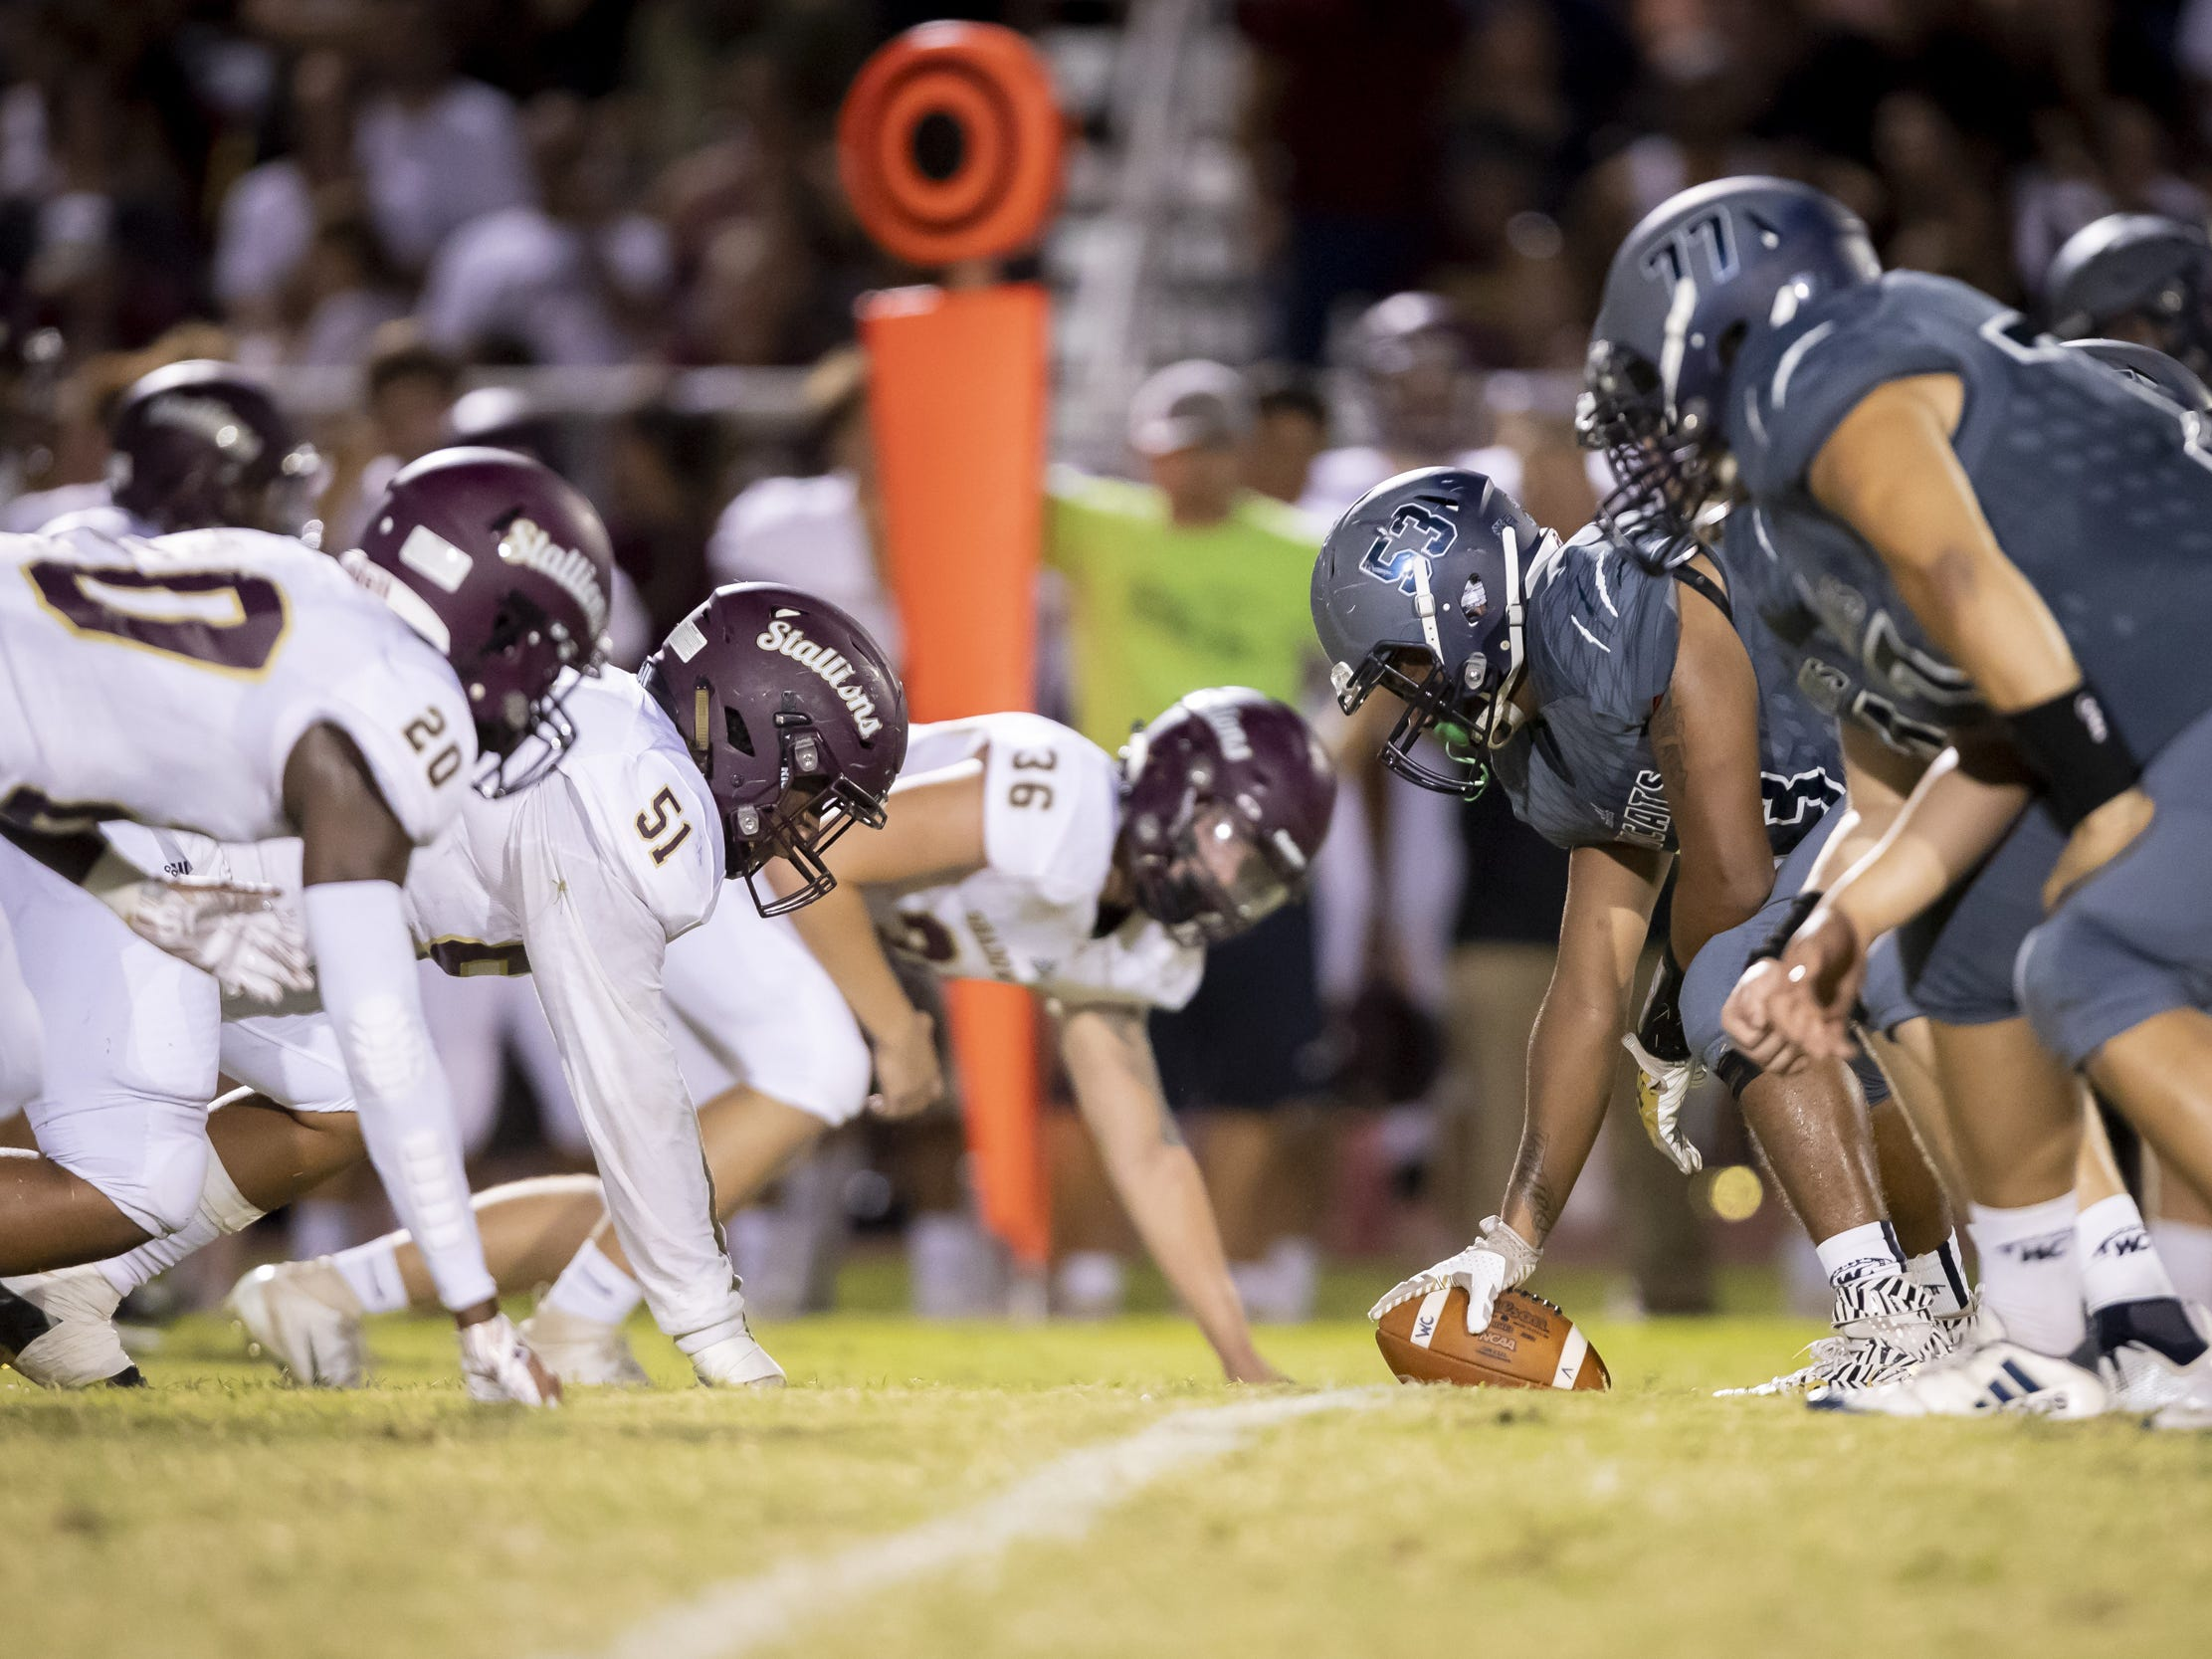 The Willow Canyon Wildcats and the Shadow Ridge Stallions face off at Willow Canyon High School on Friday, September 7, 2018 in Surprise, Arizona. #azhsfb